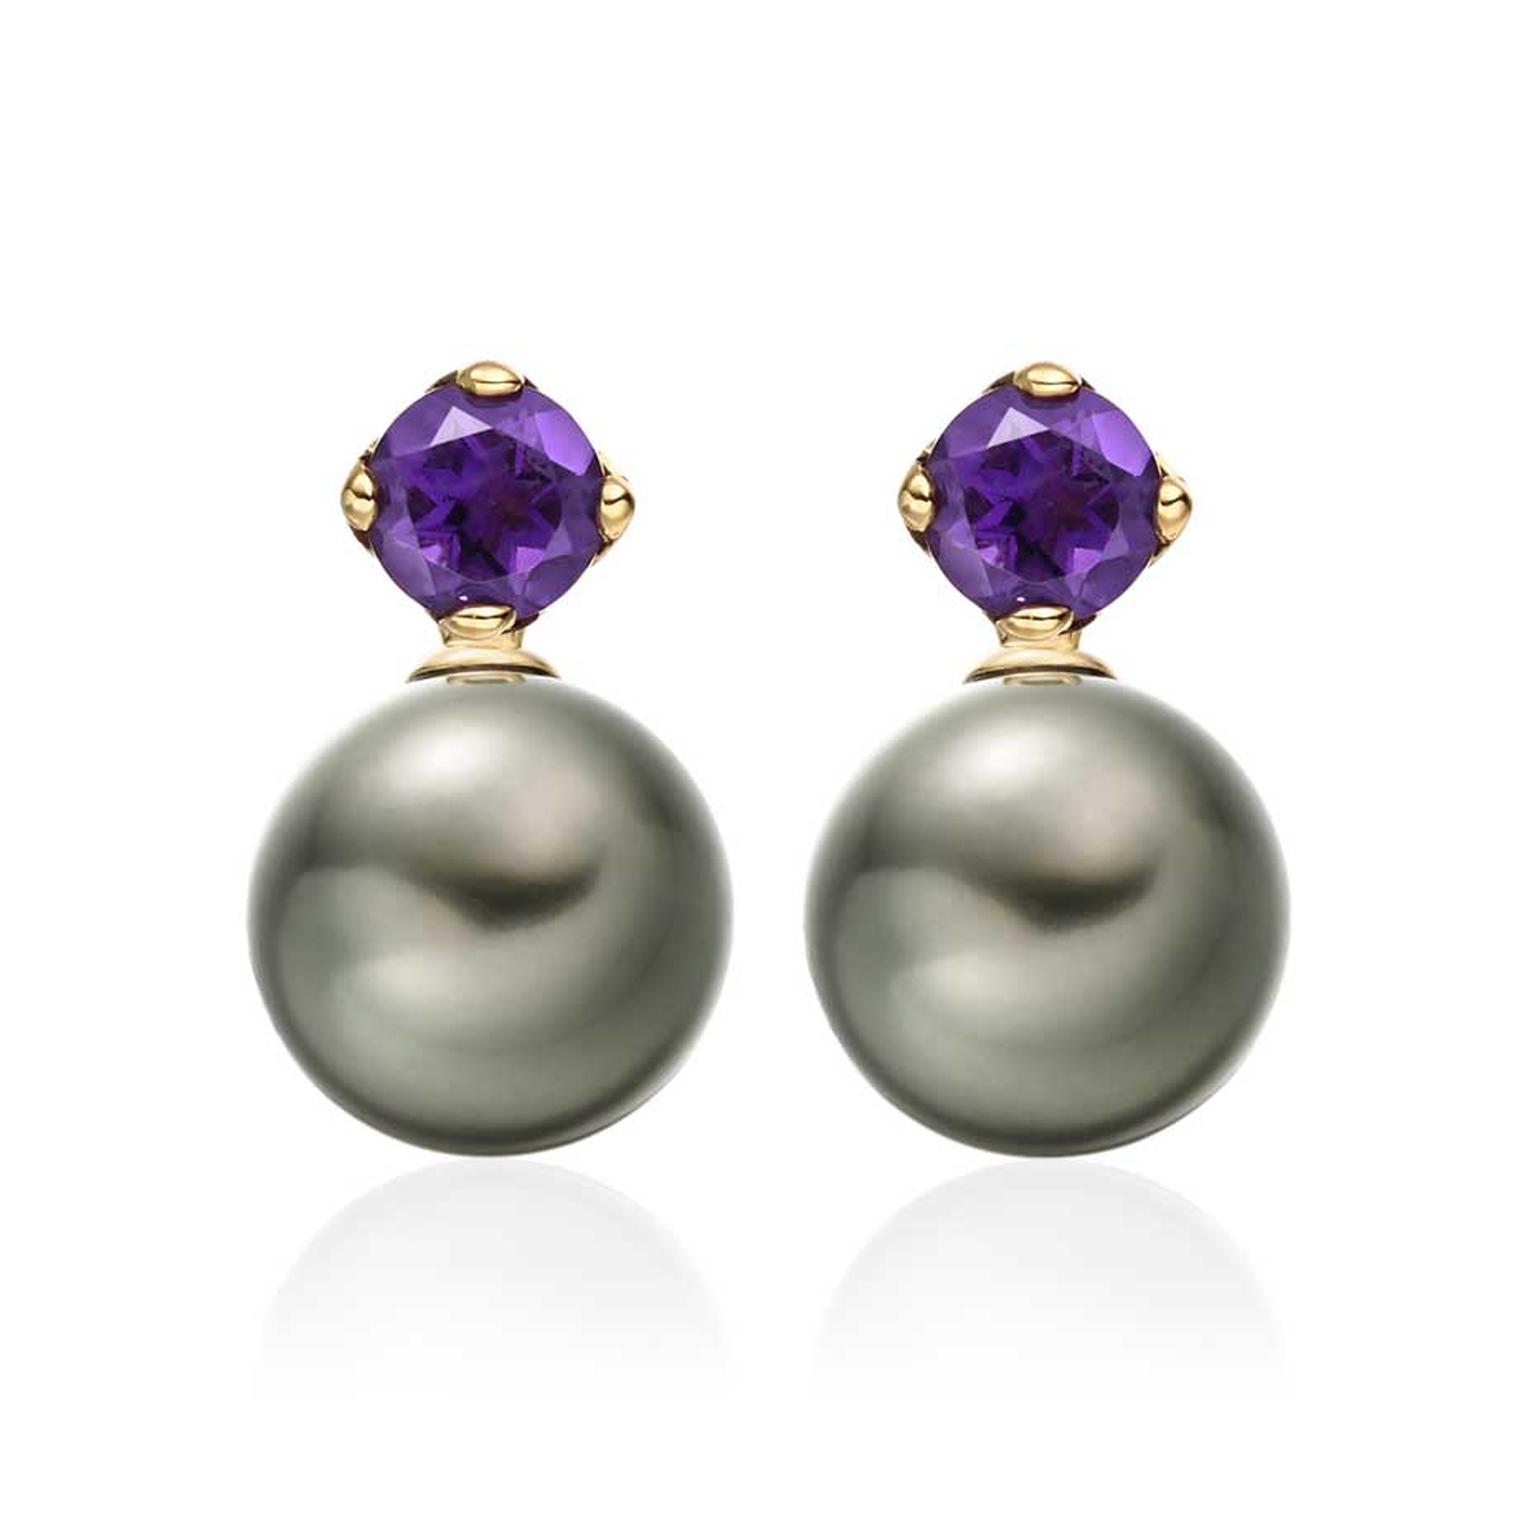 Winterson Lief Tahitian pearl earrings in yellow gold with amethysts.